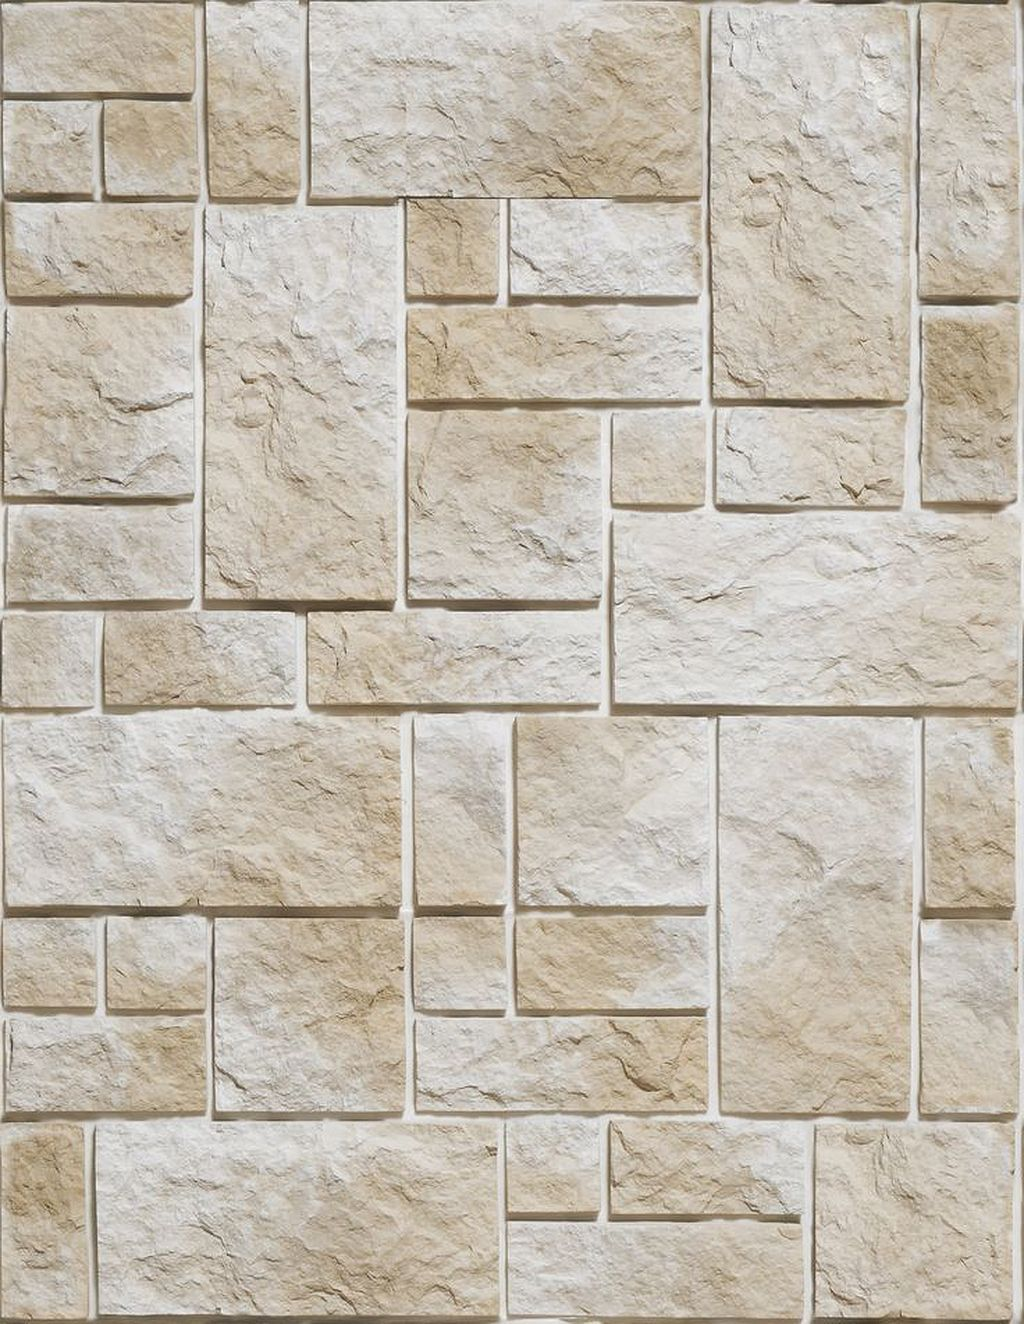 60+ Awesome Tile Texture Ideas for Your Wall and Floor | Decorative ...